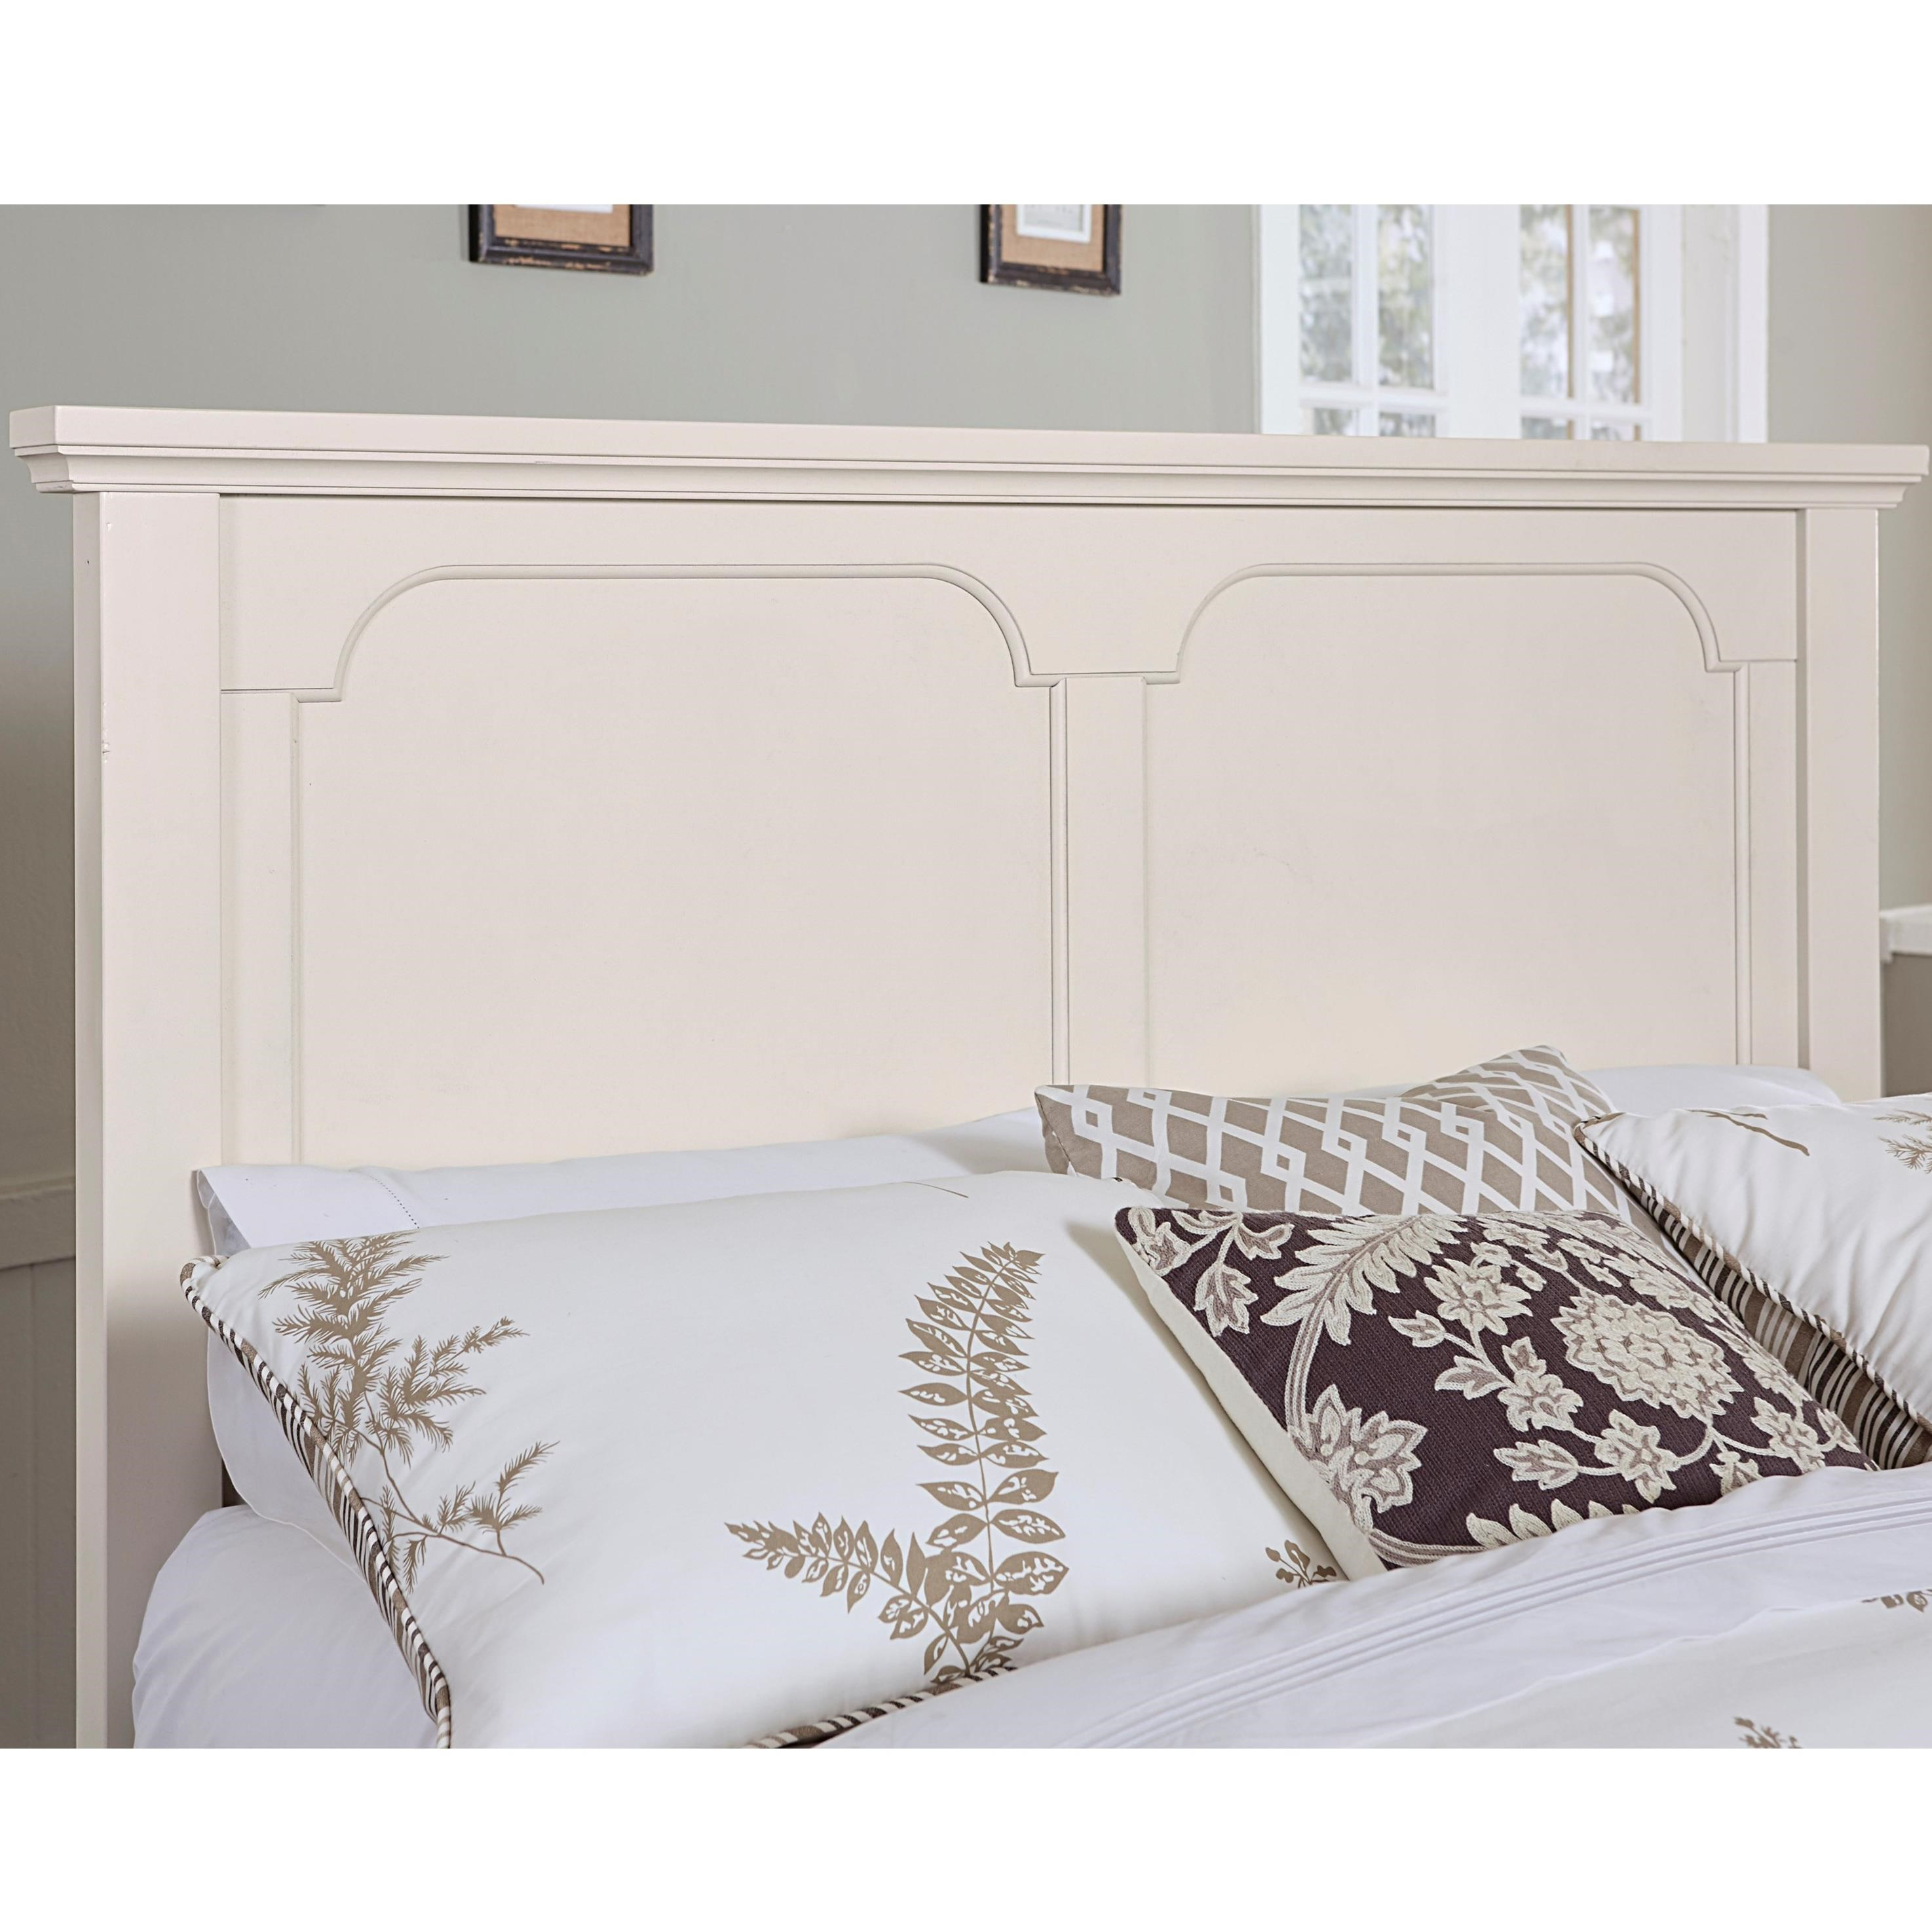 Bungalow Queen Panel Headboard by Laurel Mercantile Co. at Lagniappe Home Store